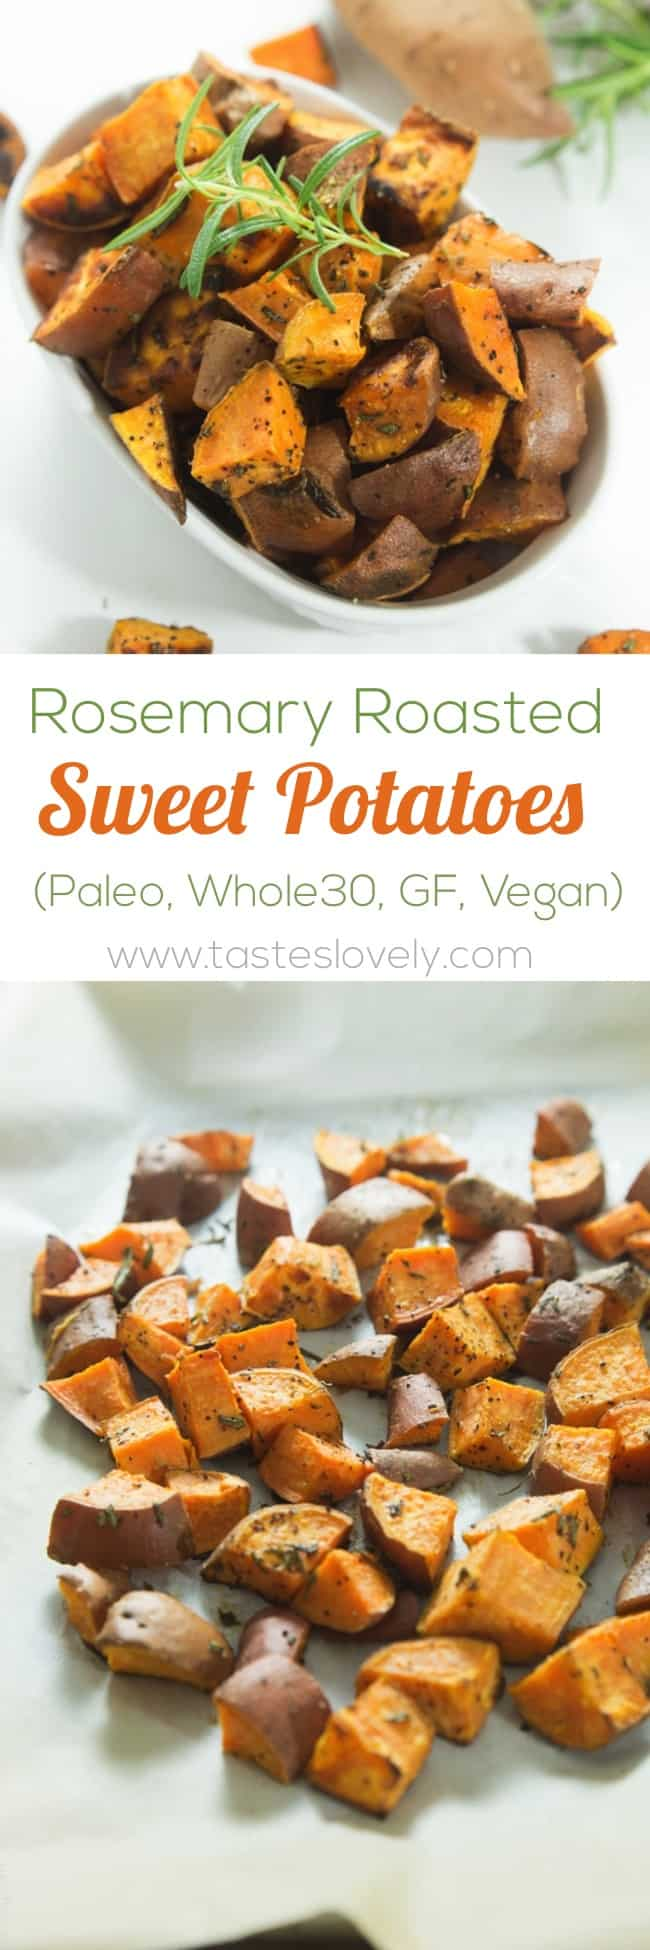 Rosemary Roasted Sweet Potatoes #paleo #whole30 #glutenfree #vegan